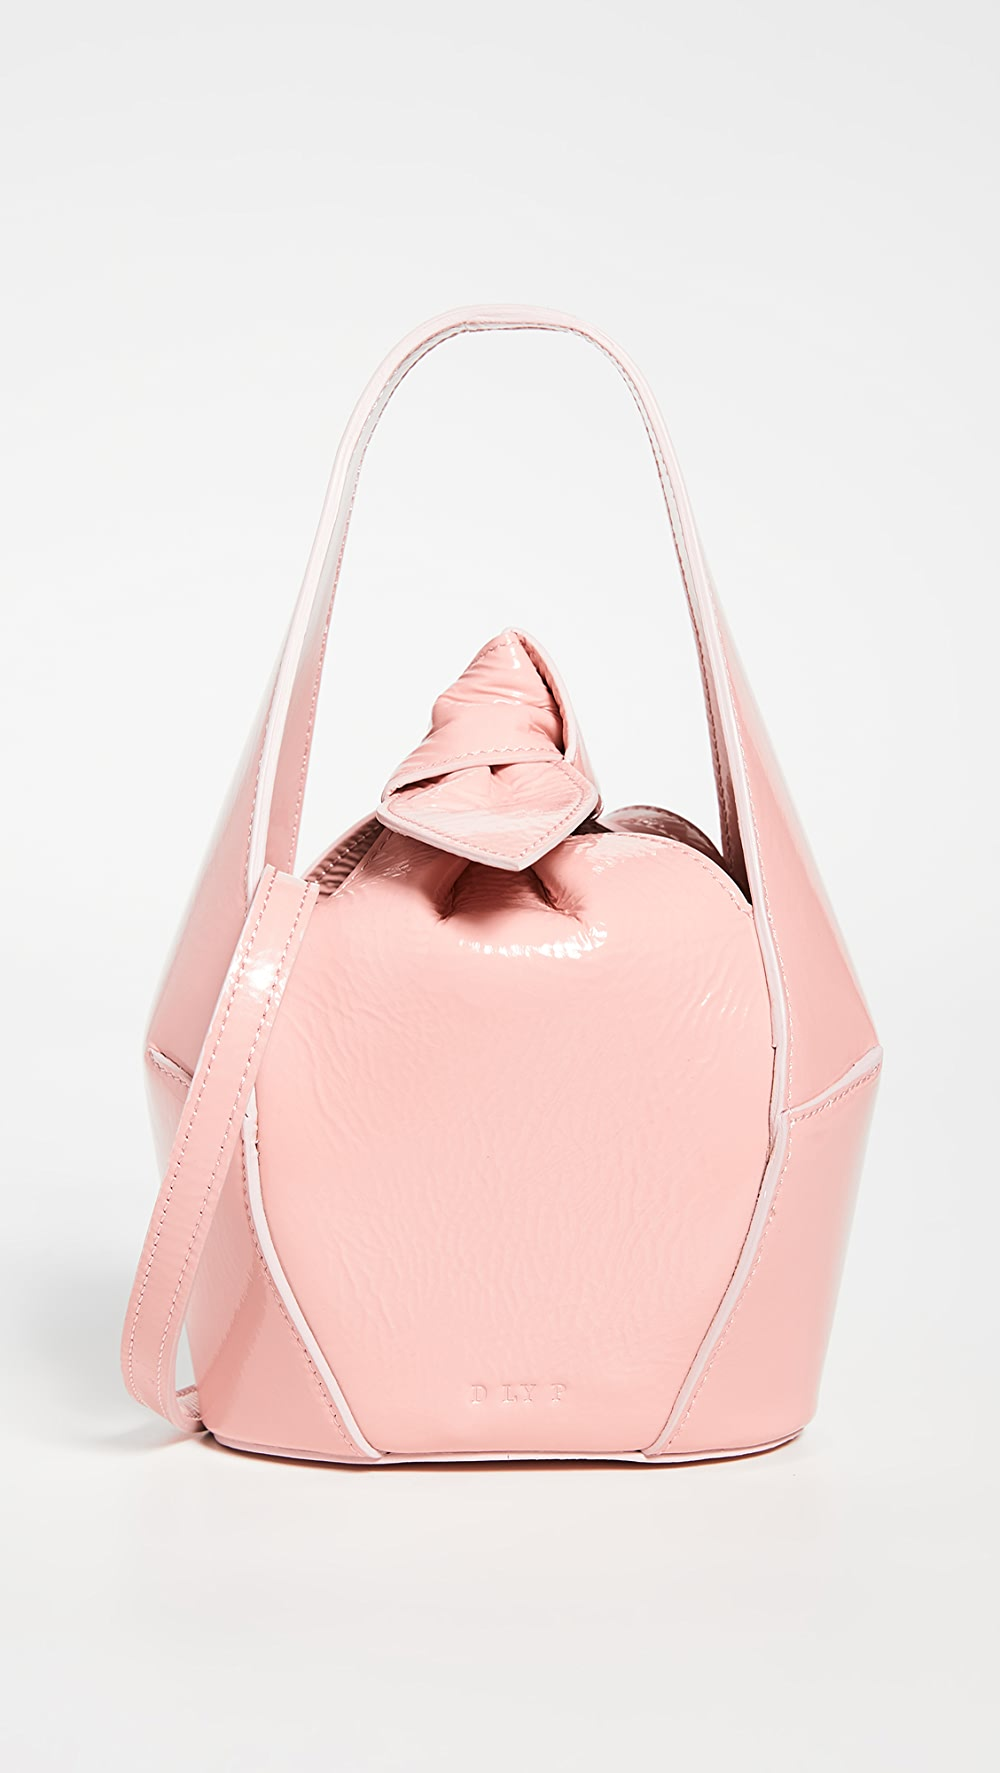 Imported From Abroad Dlyp - Top Knot Mini Bag Terrific Value